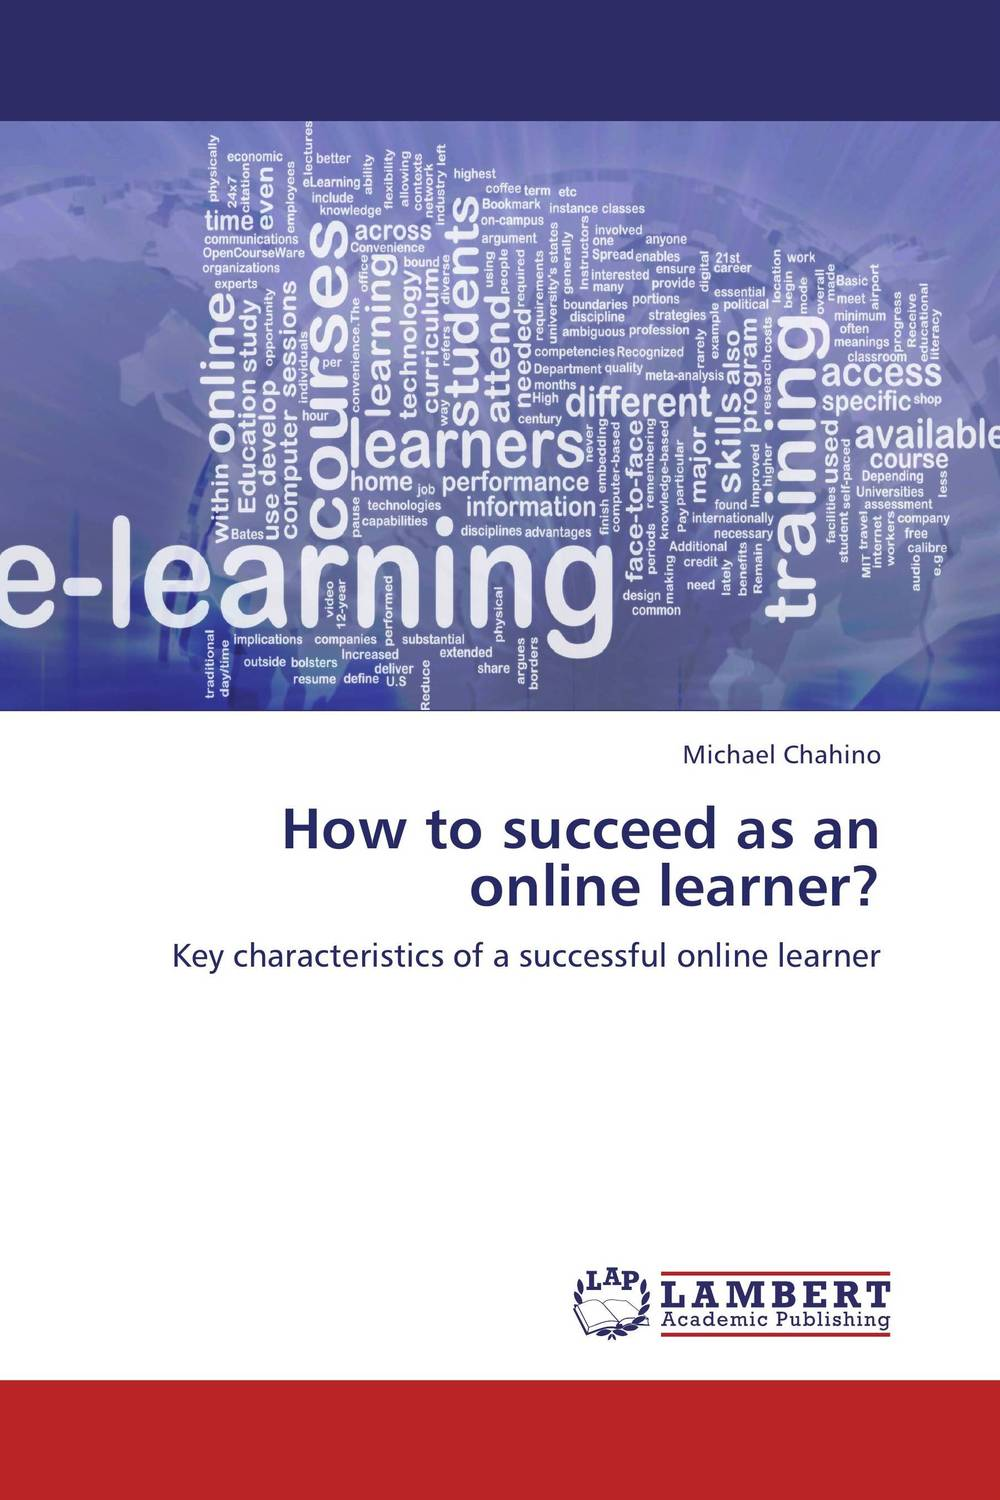 How to succeed as an online learner?